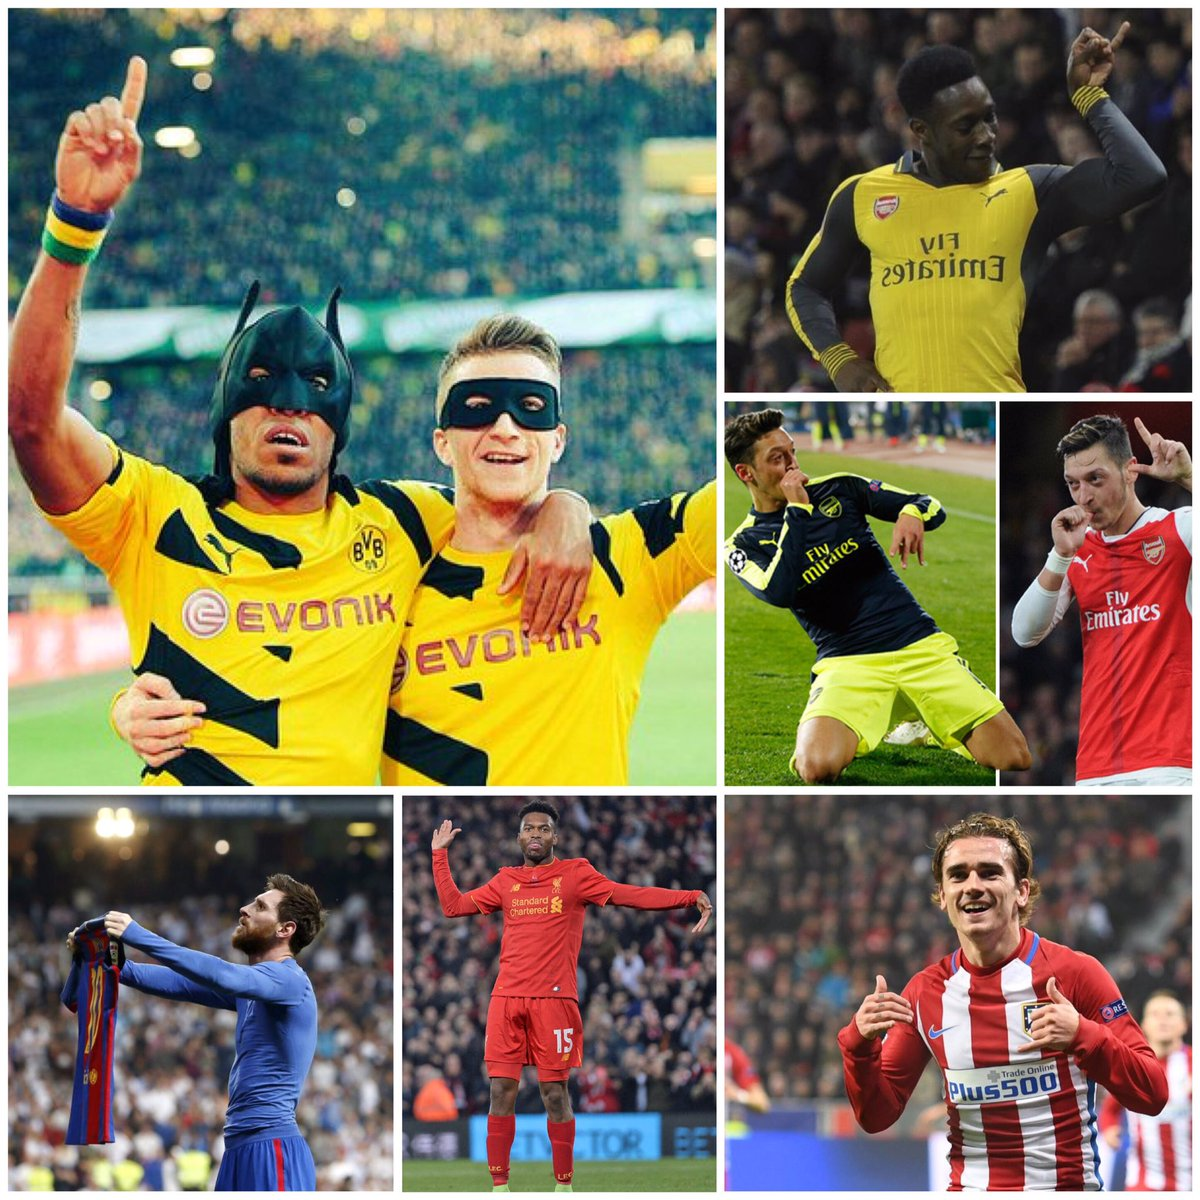 @officialpes @Adam_Bhatti @AsimTanvir Will we see any of this celebrations on #PES2018 ? they are all from players of partner clubs <br>http://pic.twitter.com/Tz5AbsmSCh